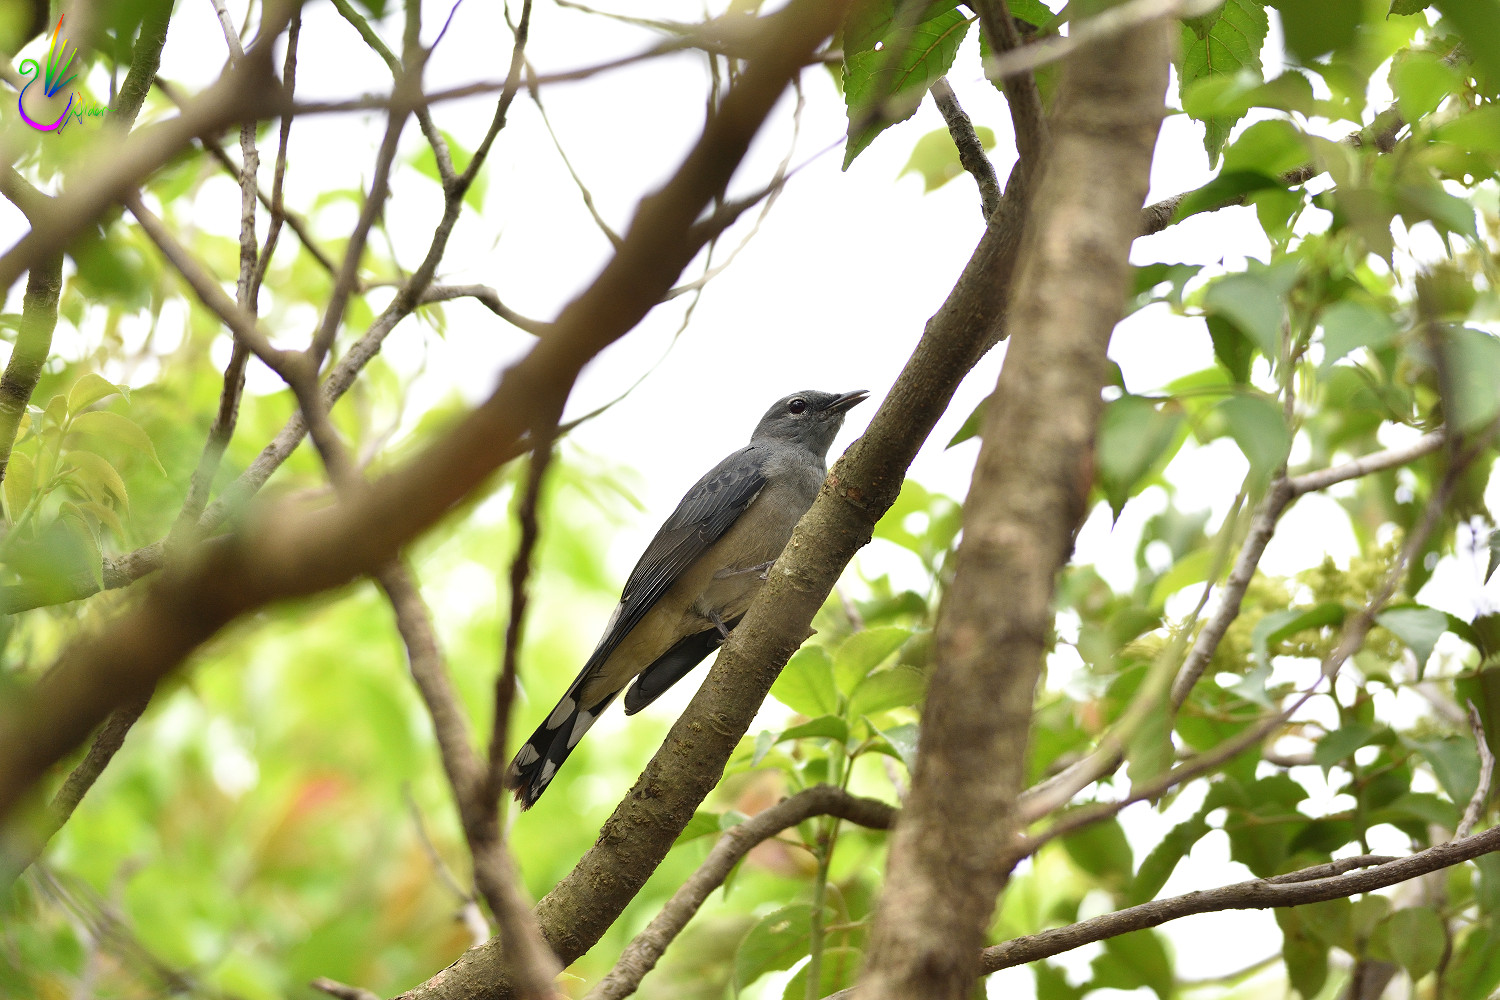 Black-winged_Cuckoo-shrike_8871